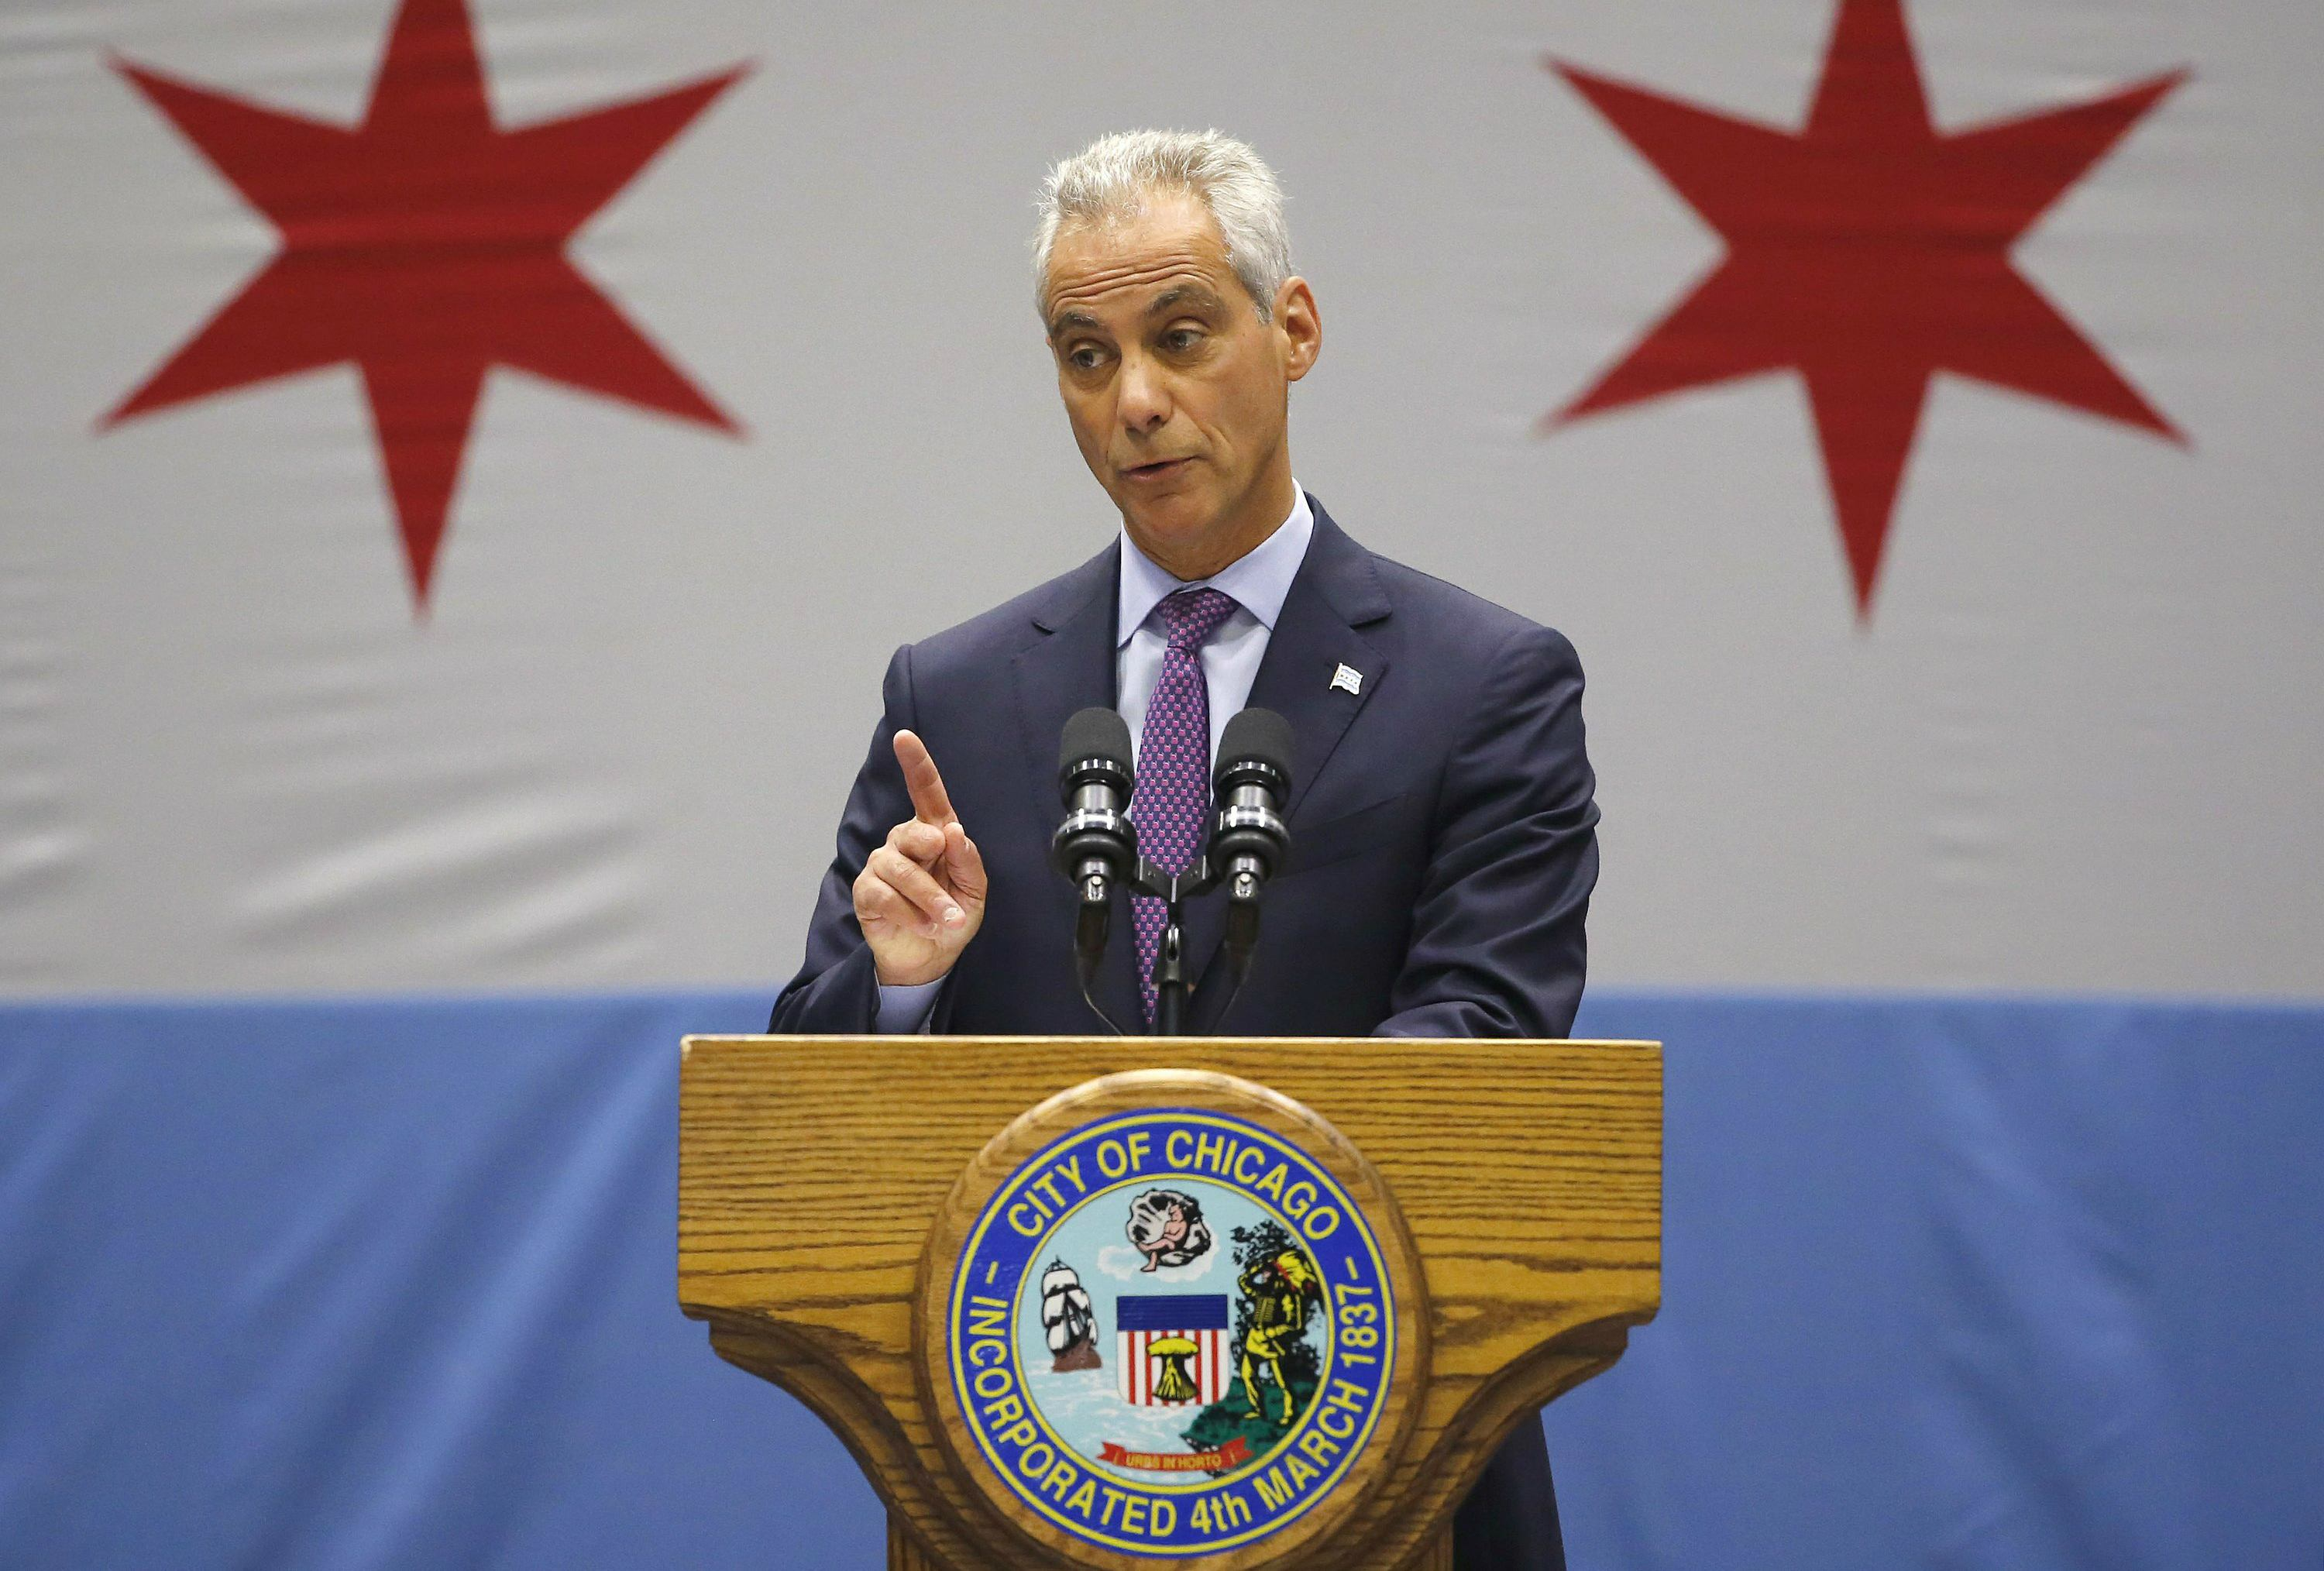 Chicago casino gambling Rahm Emanuel